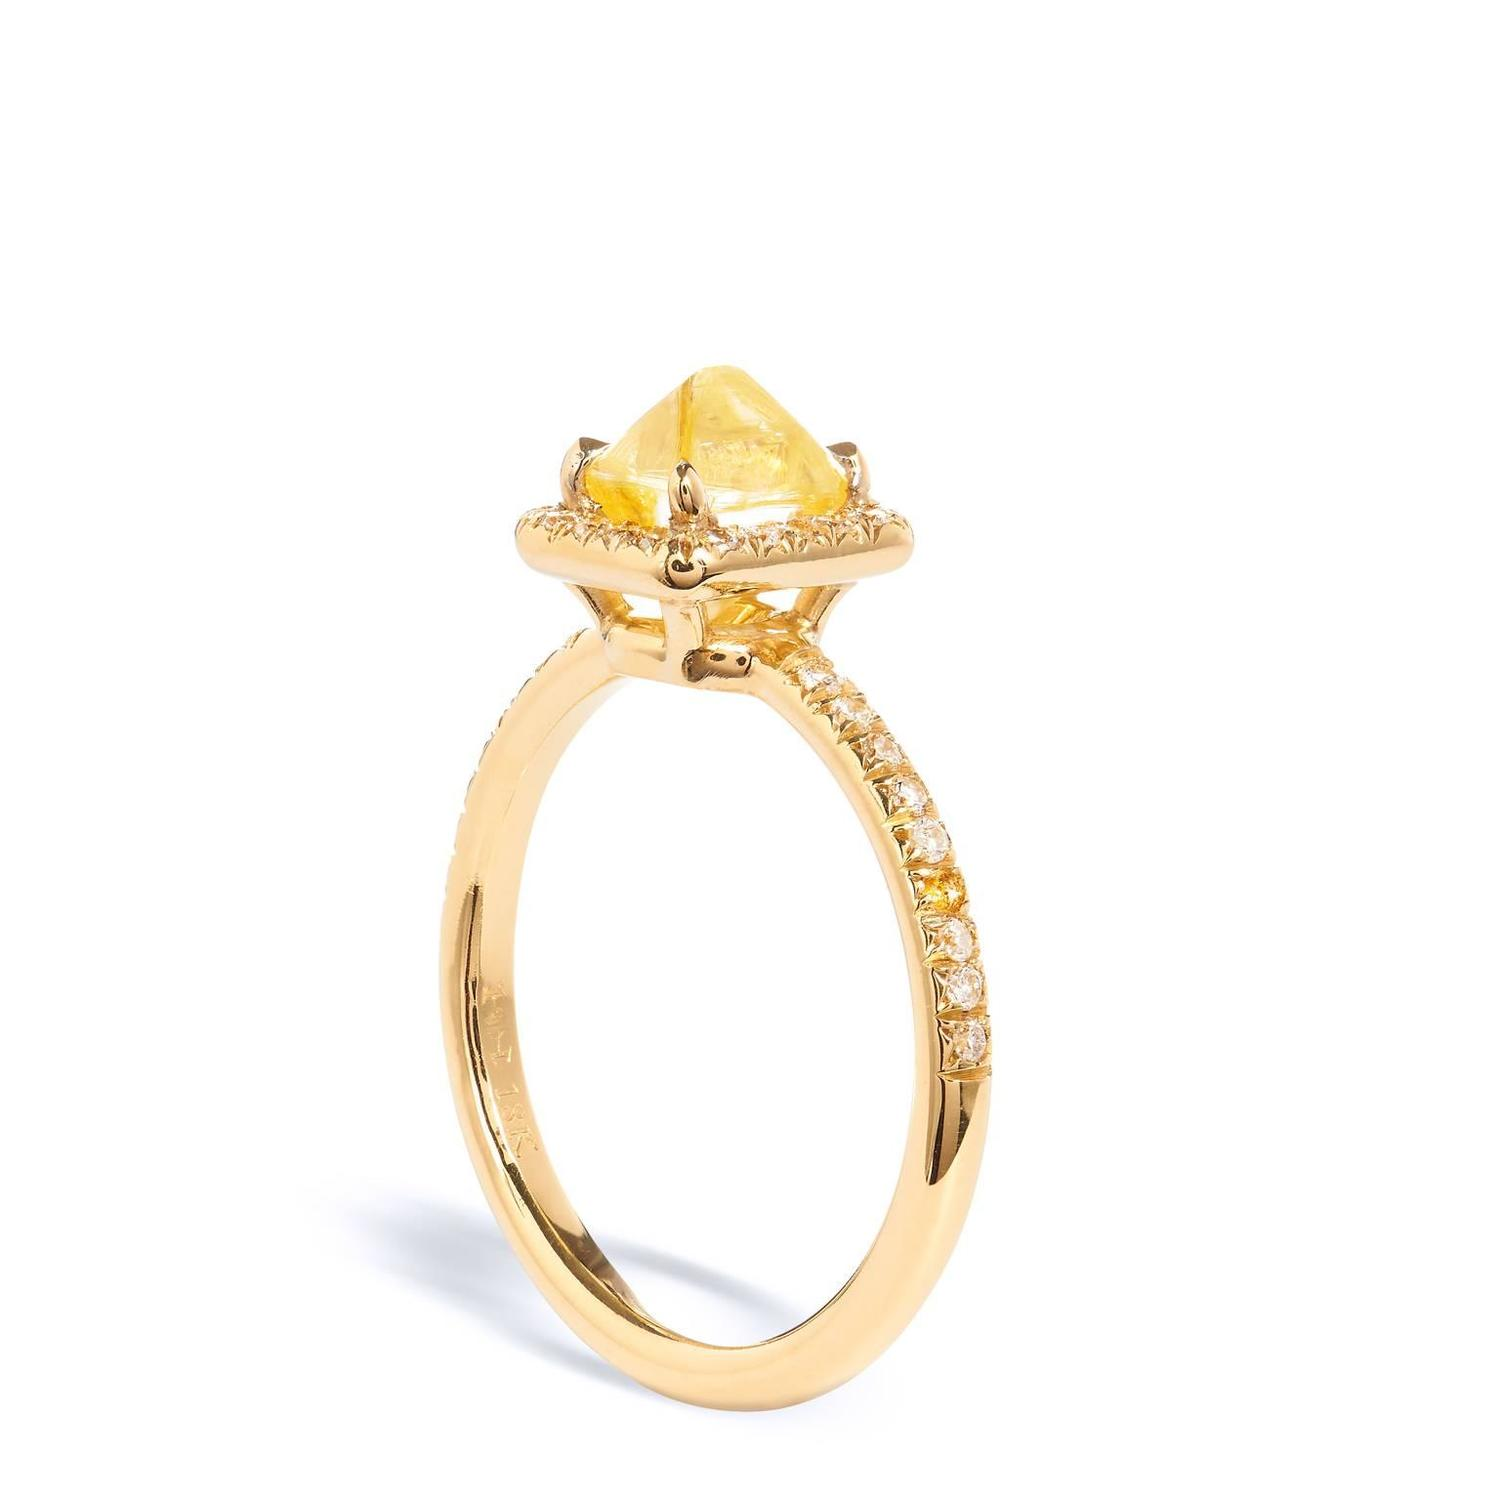 18kt Yellow Gold and Yellow Diamond Ring For Sale at 1stdibs